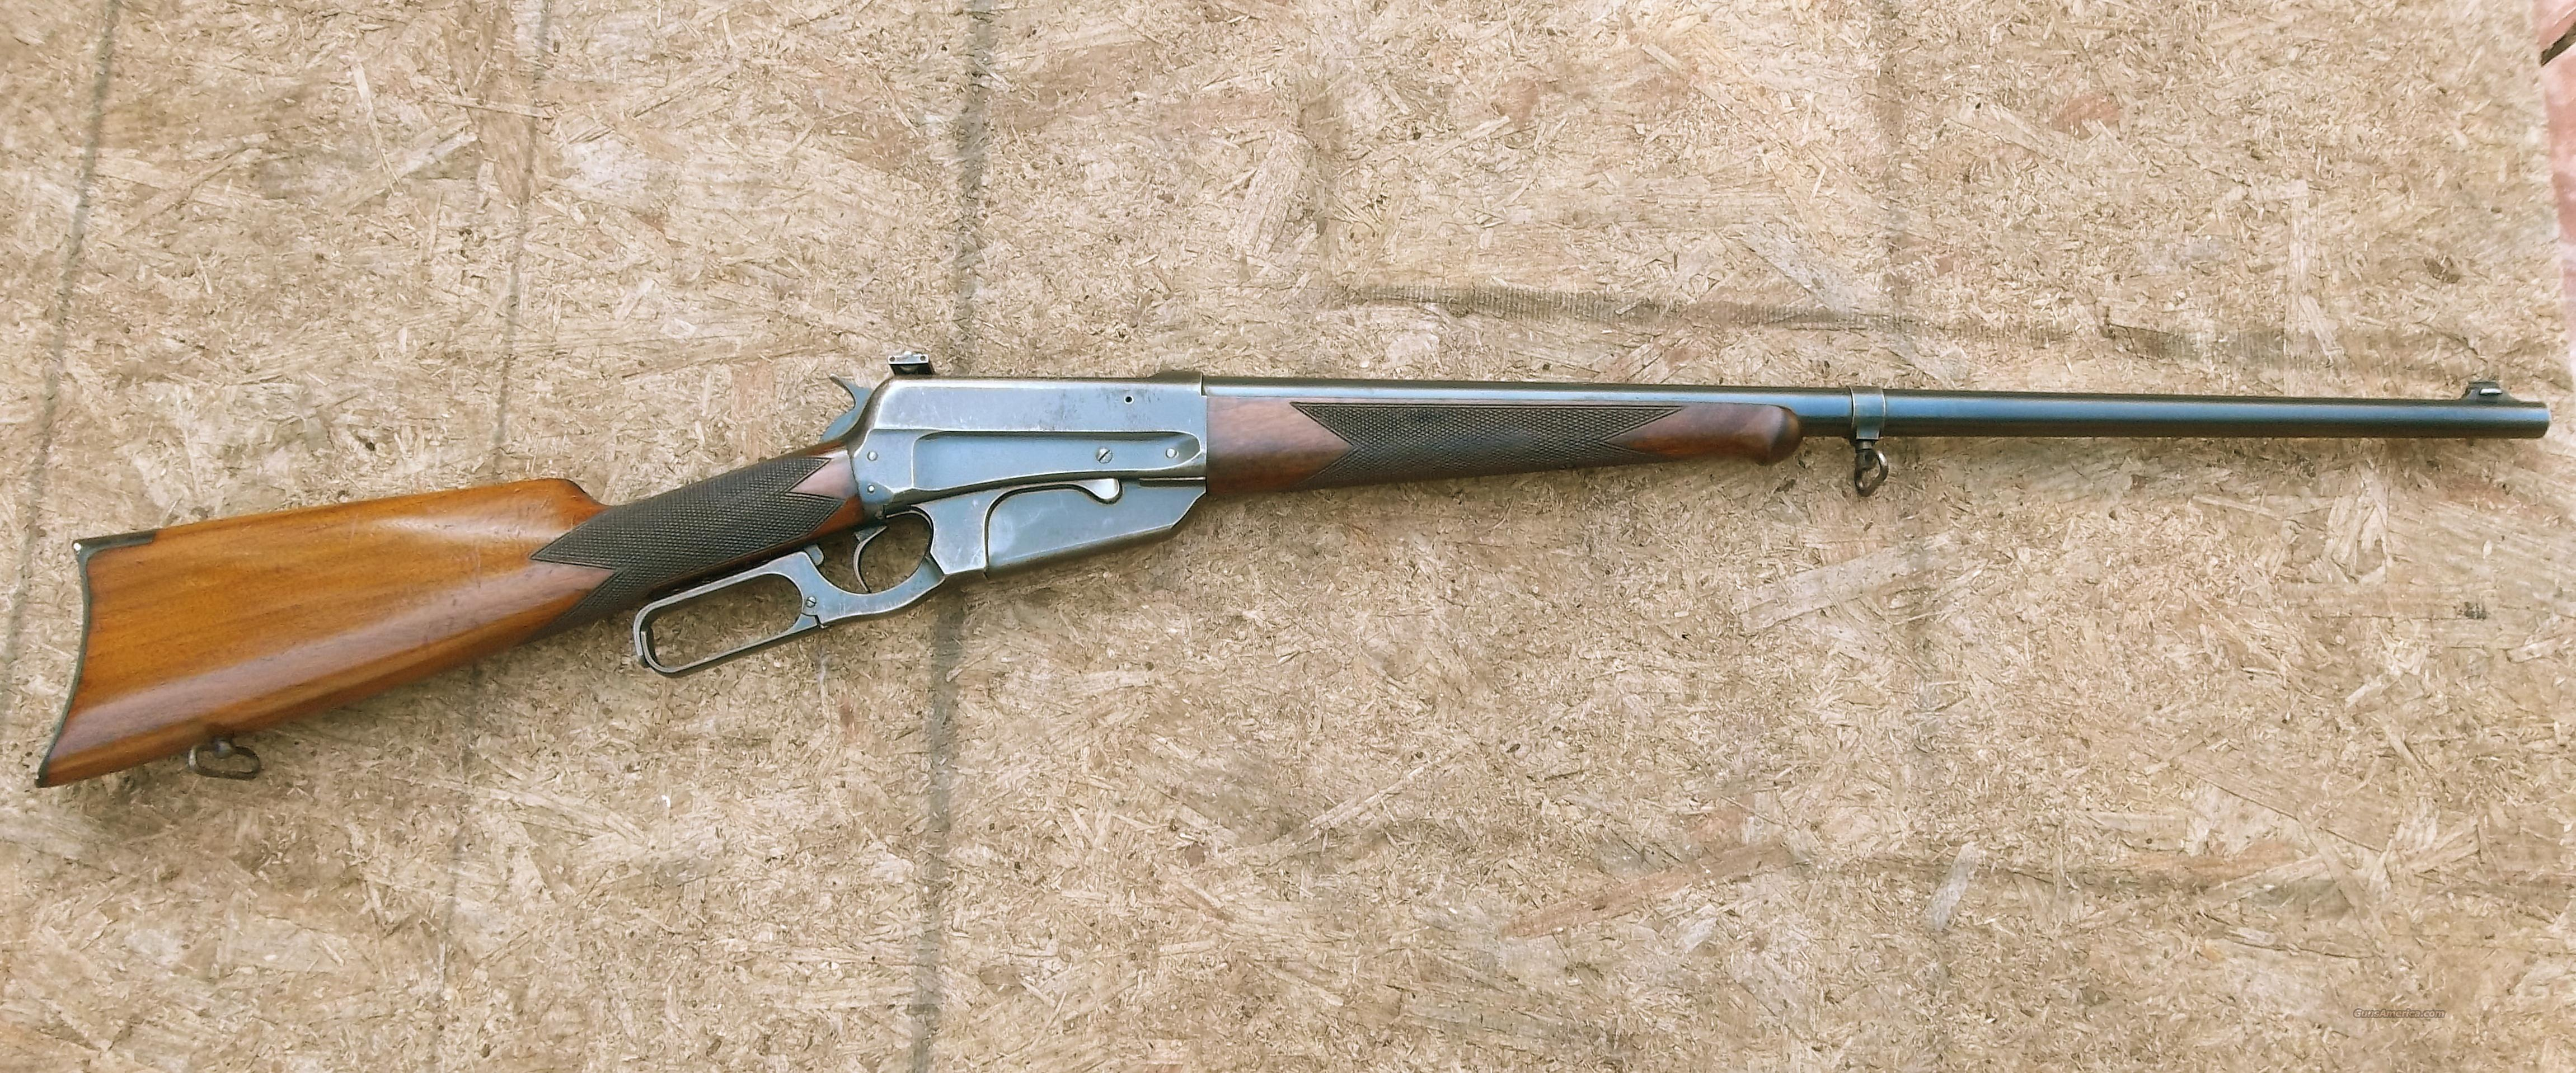 1895 WINCHESTER 405 DELUXE  Guns > Rifles > Winchester Rifles - Modern Lever > Other Lever > Pre-64